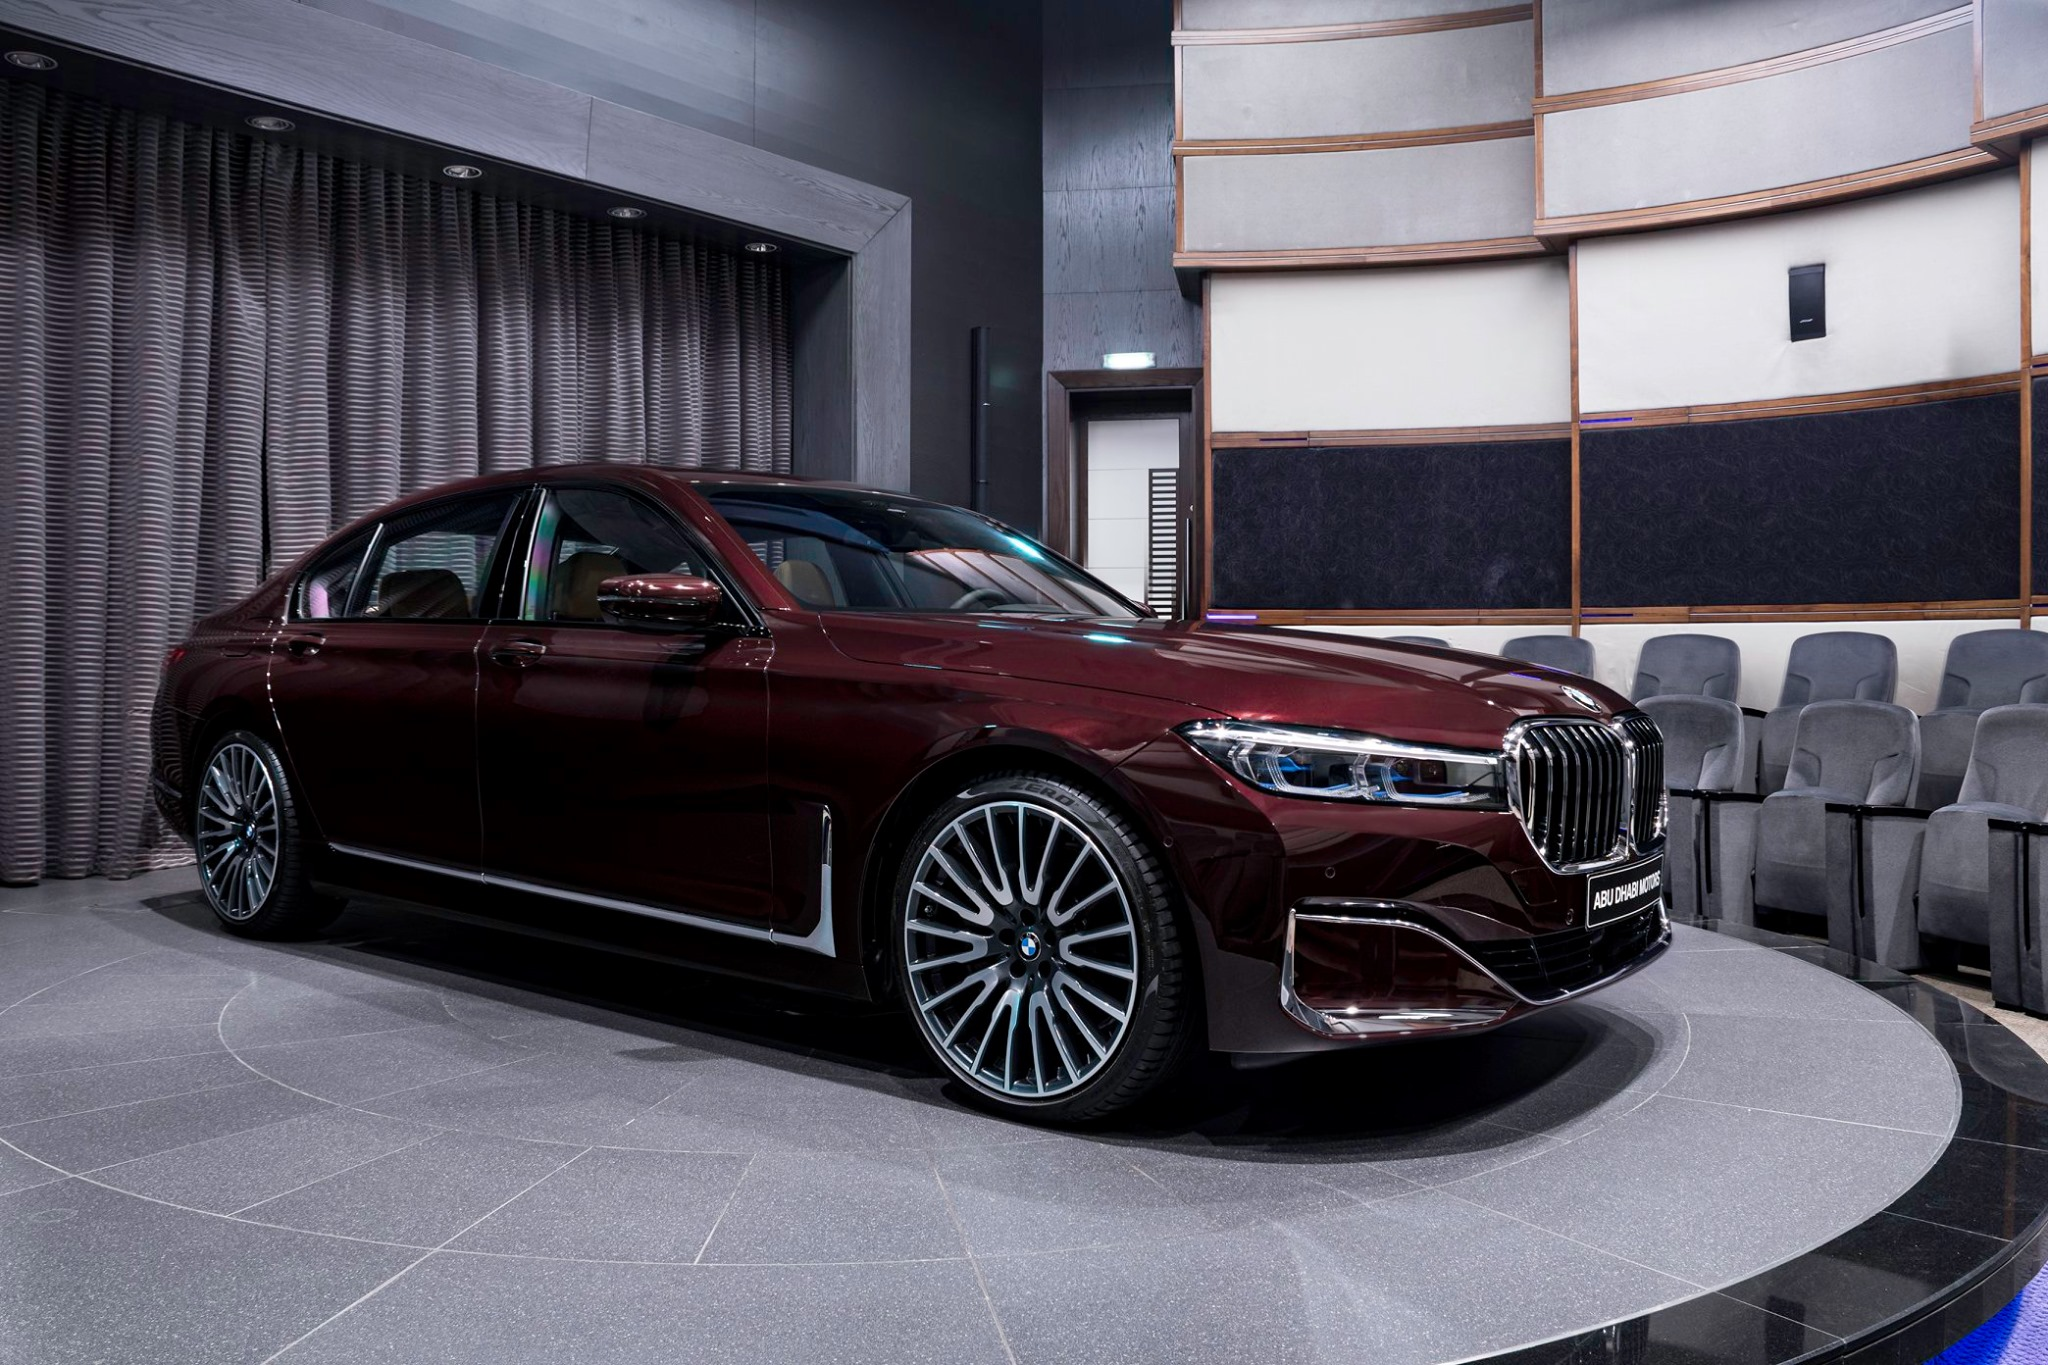 BMW 750Li xDrive in Royal Burgundy Red 1